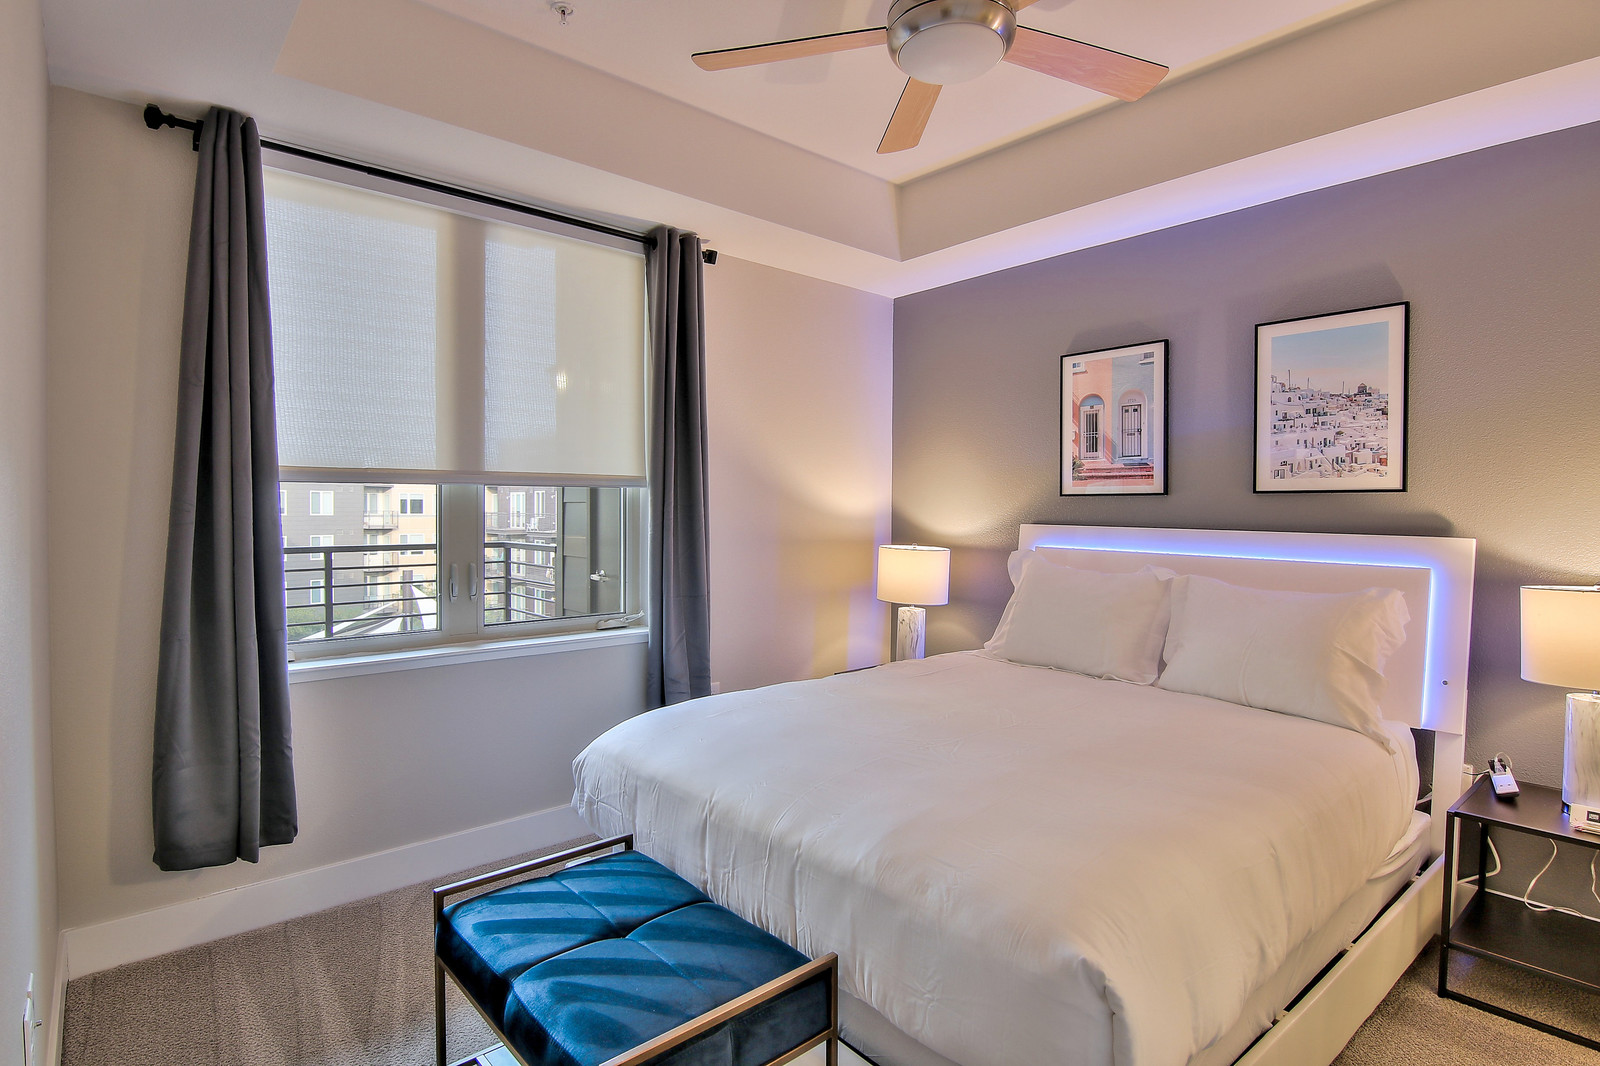 Bedroom at The Village Residences